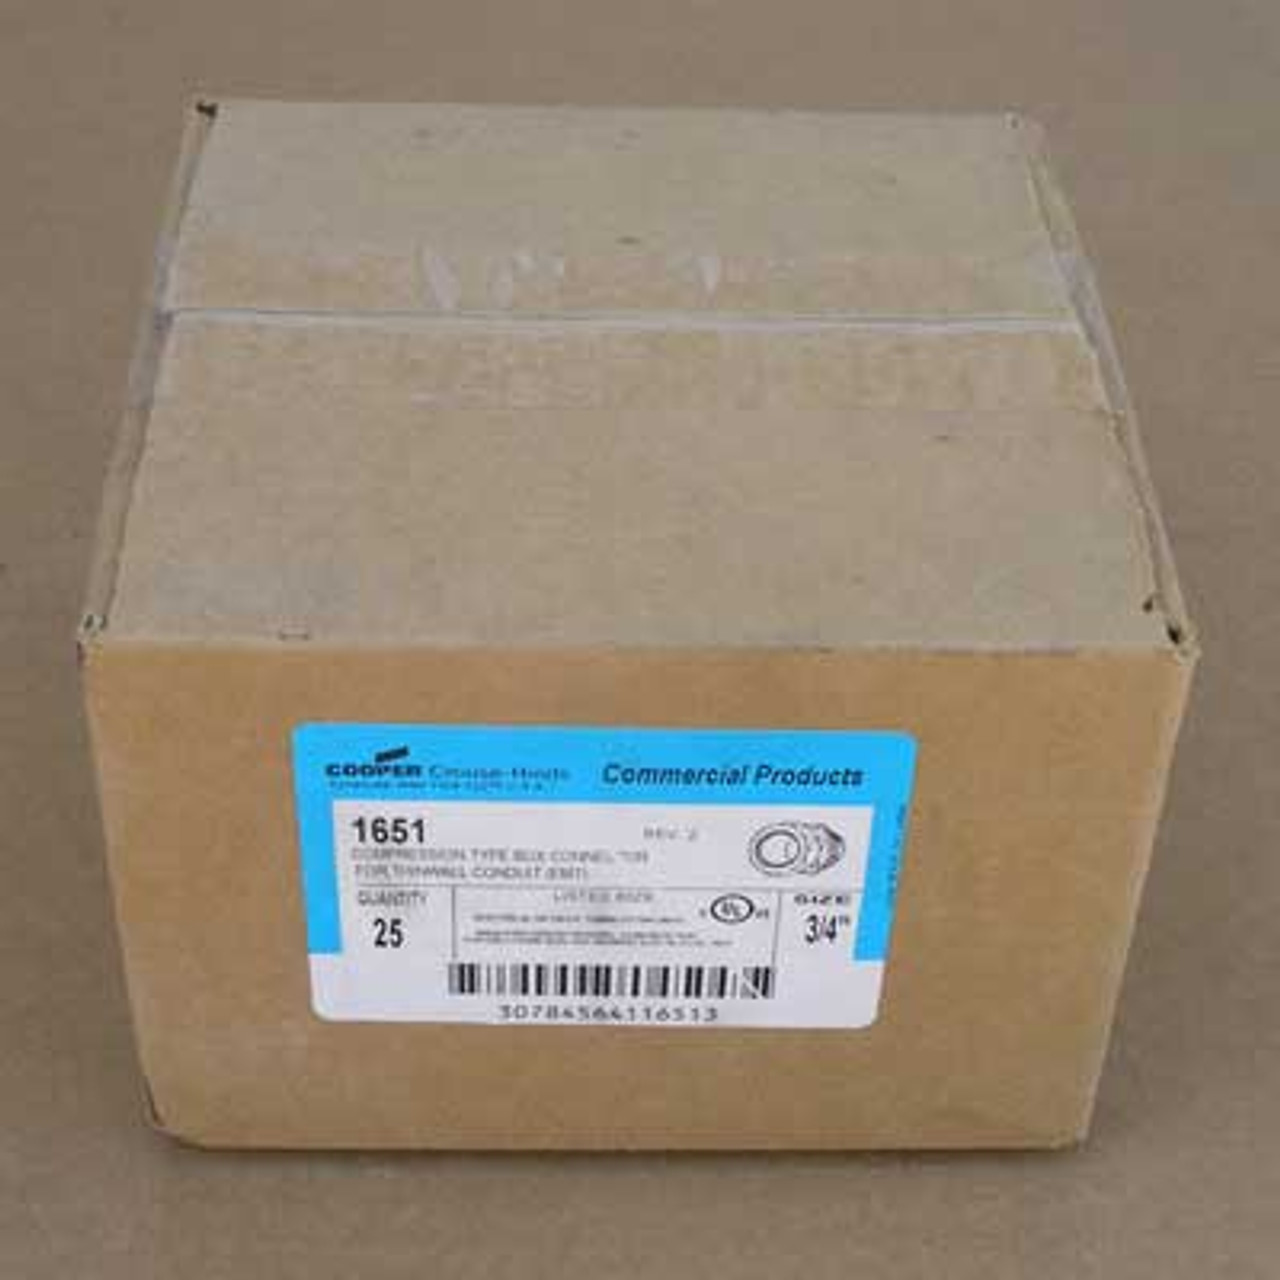 """Cooper Crouse-Hinds 1651 Compression Type Box Connector 3/4"""" (Lot of 25) - New"""